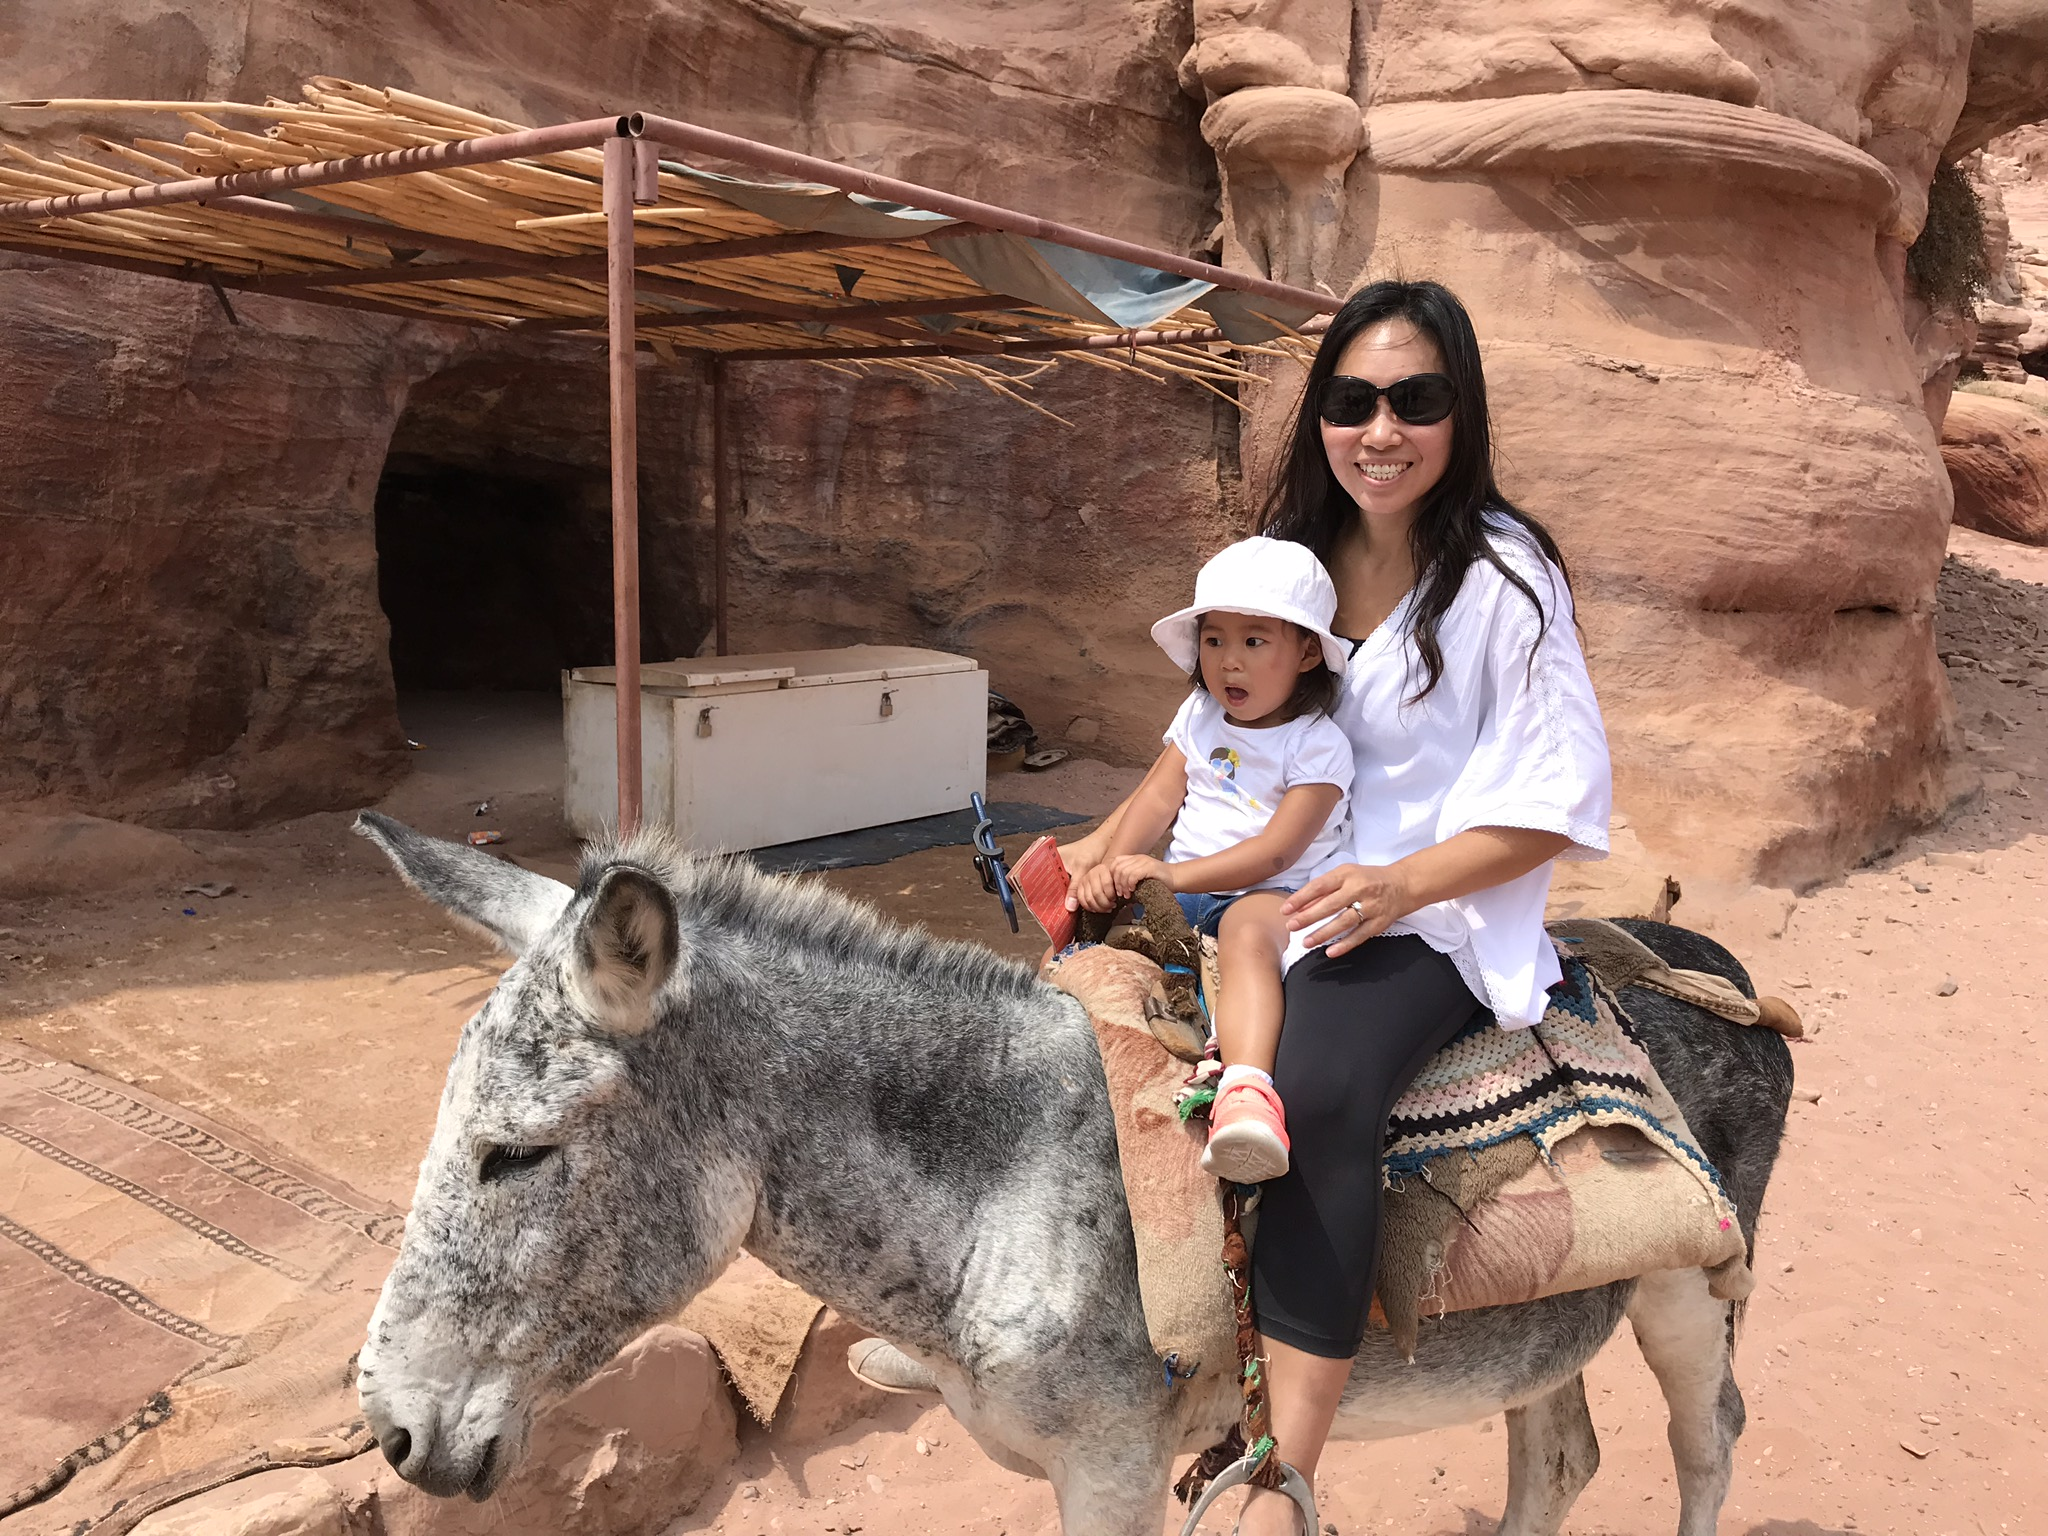 Mommy look, I'm on a donkey!